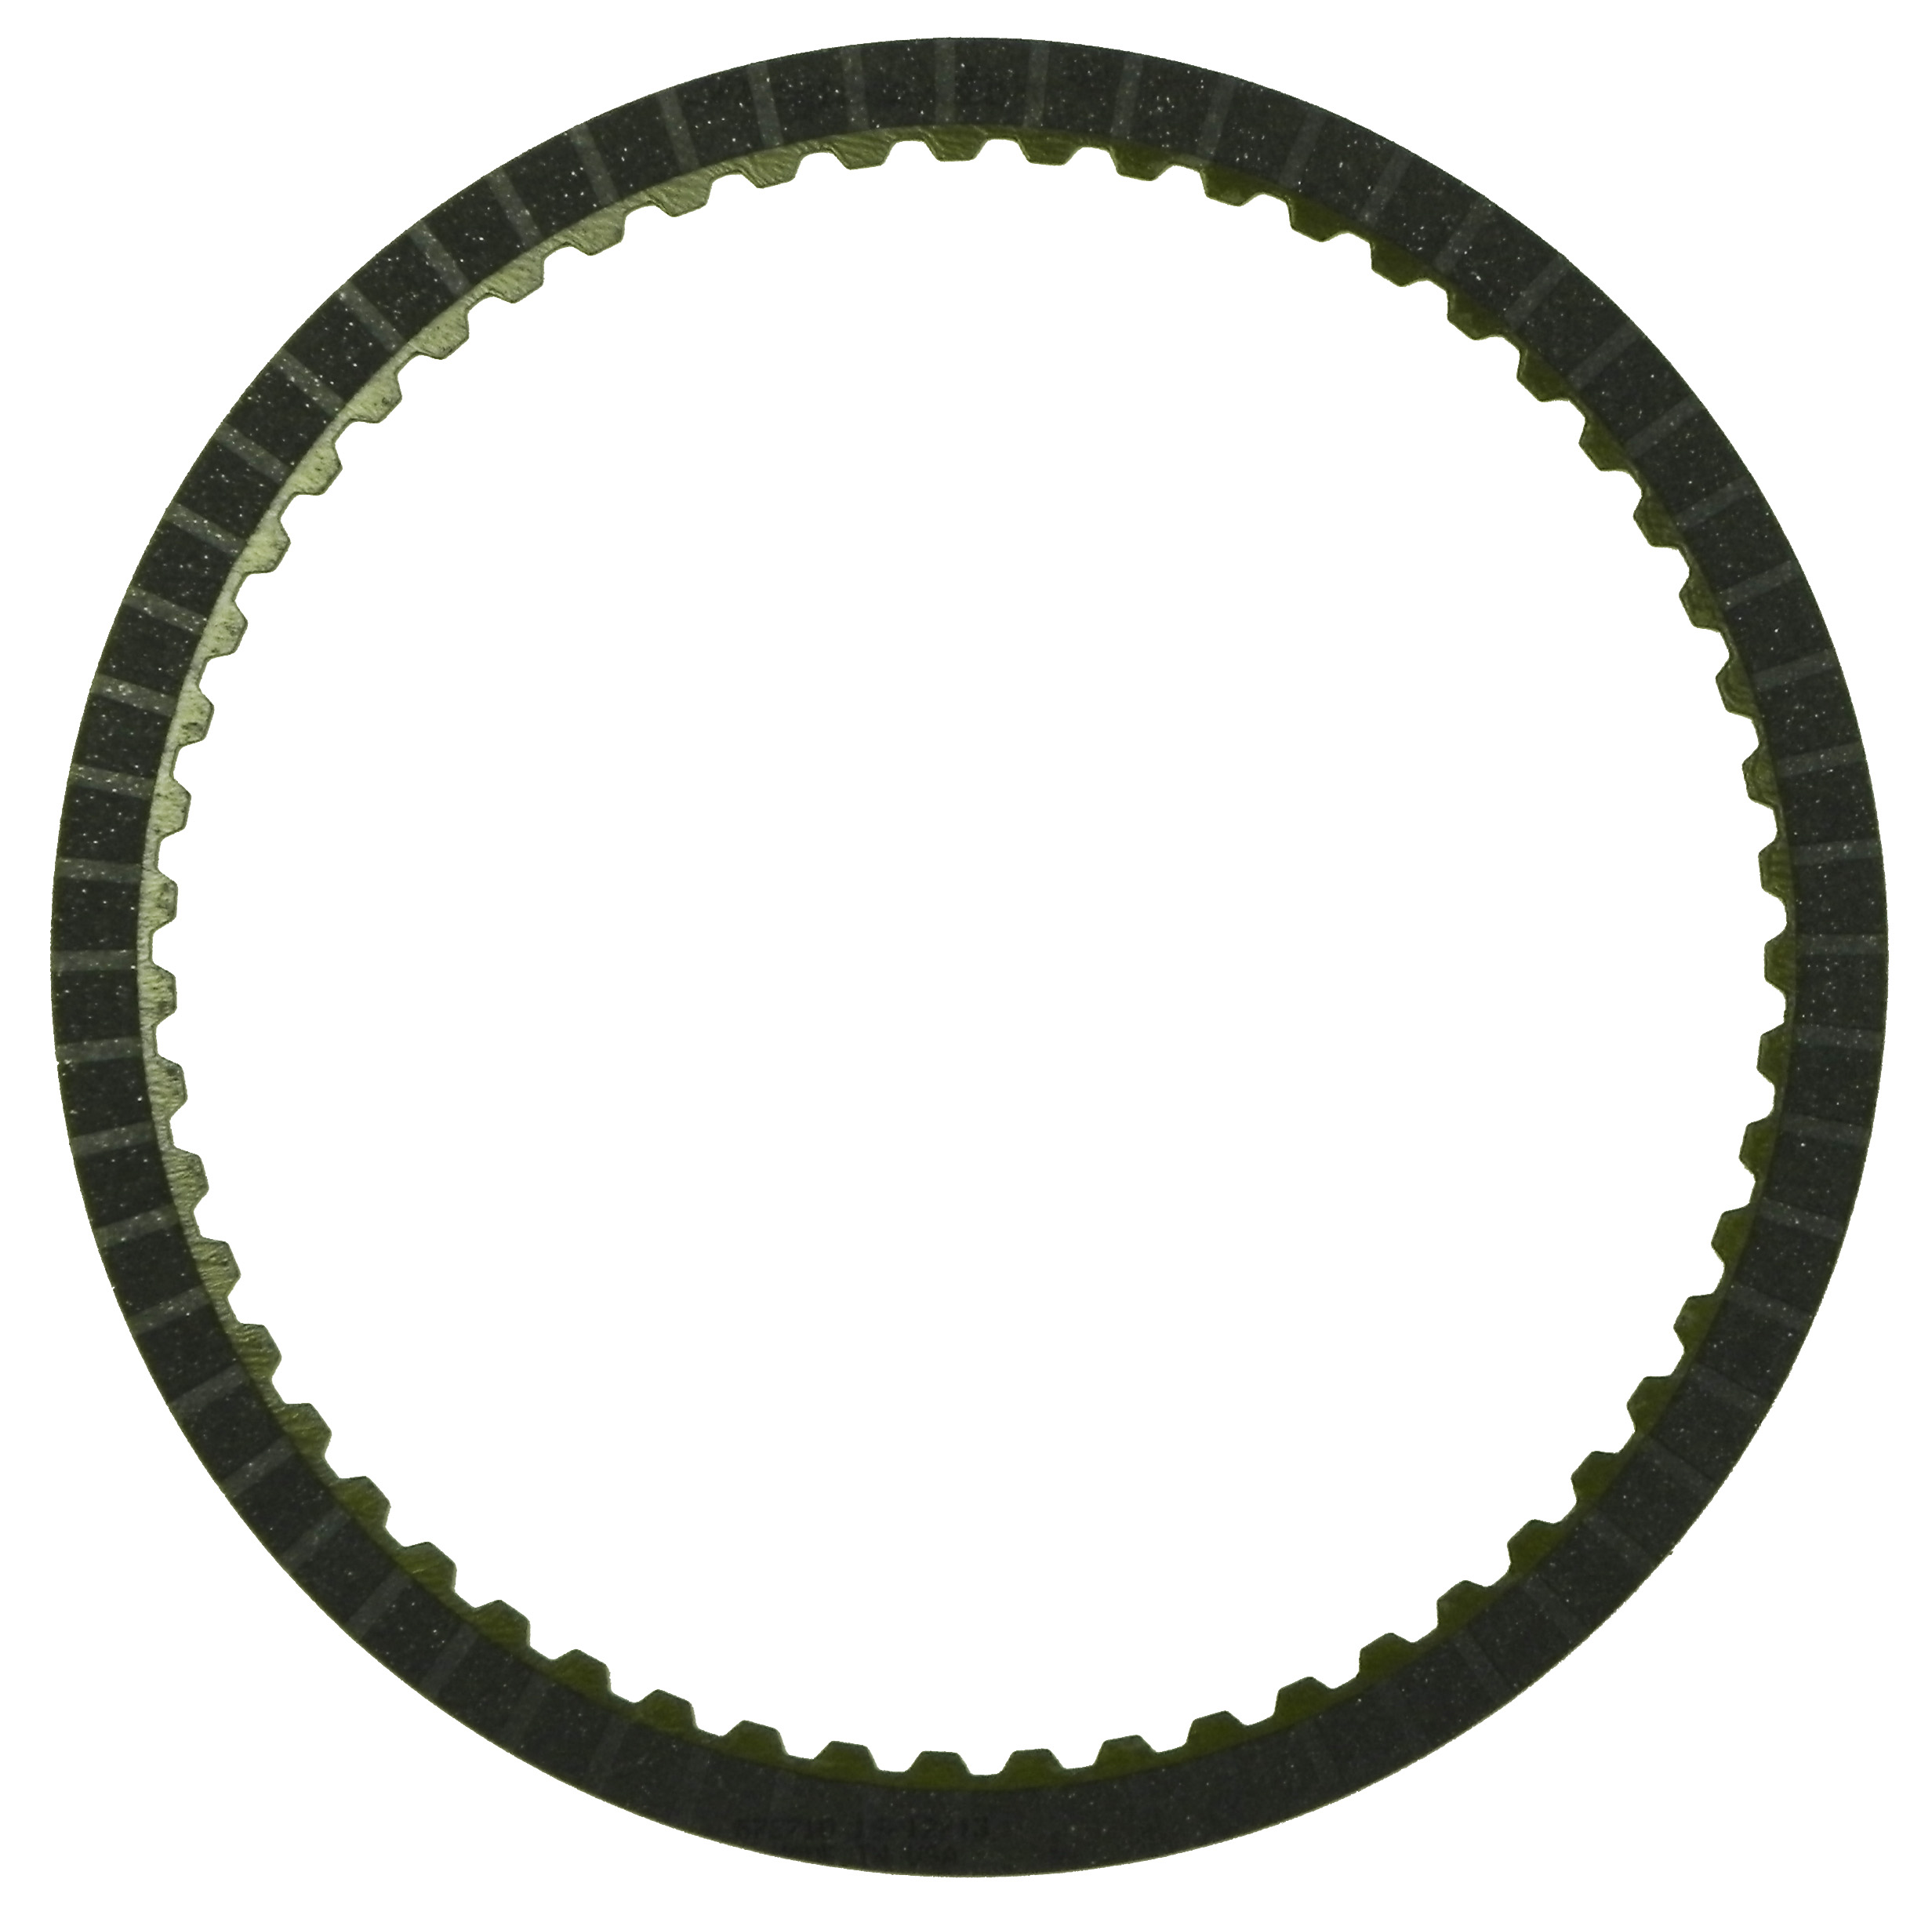 R572710 | 2001-ON Friction Clutch Plate High Energy C2 4, 5, 6 High Energy